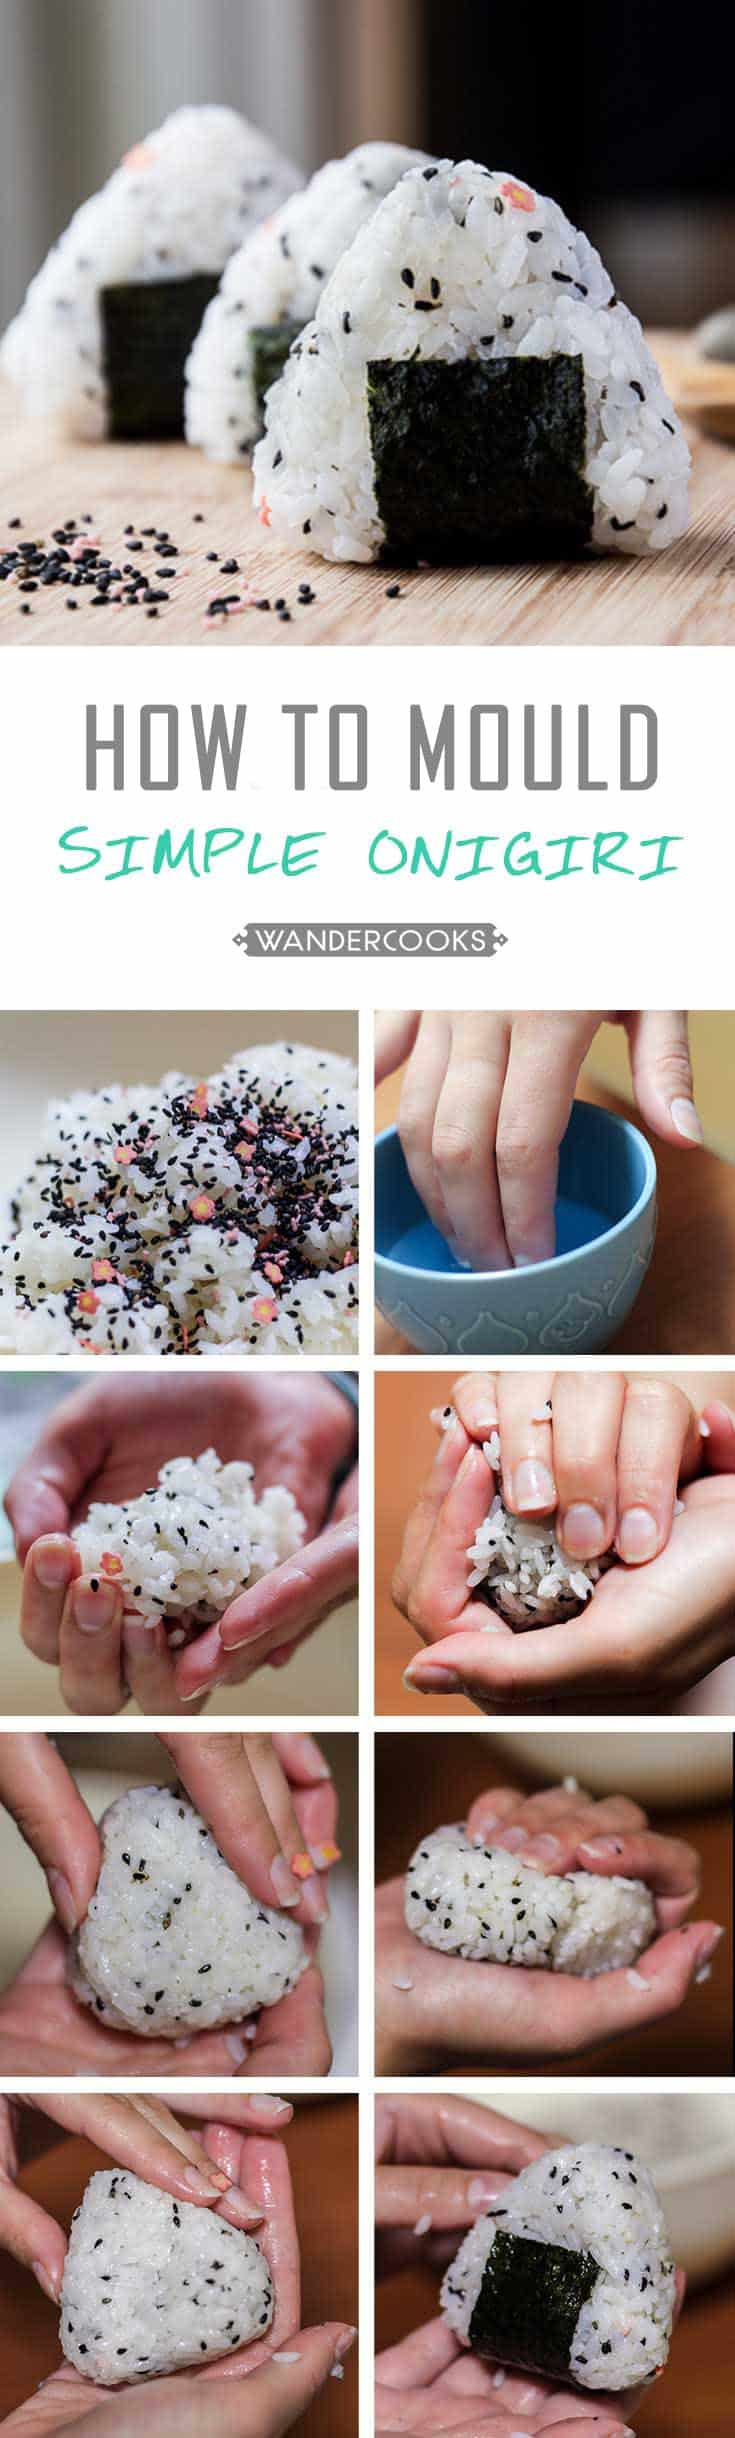 Detailed step-by-step collage of how to make this onigiri recipe.